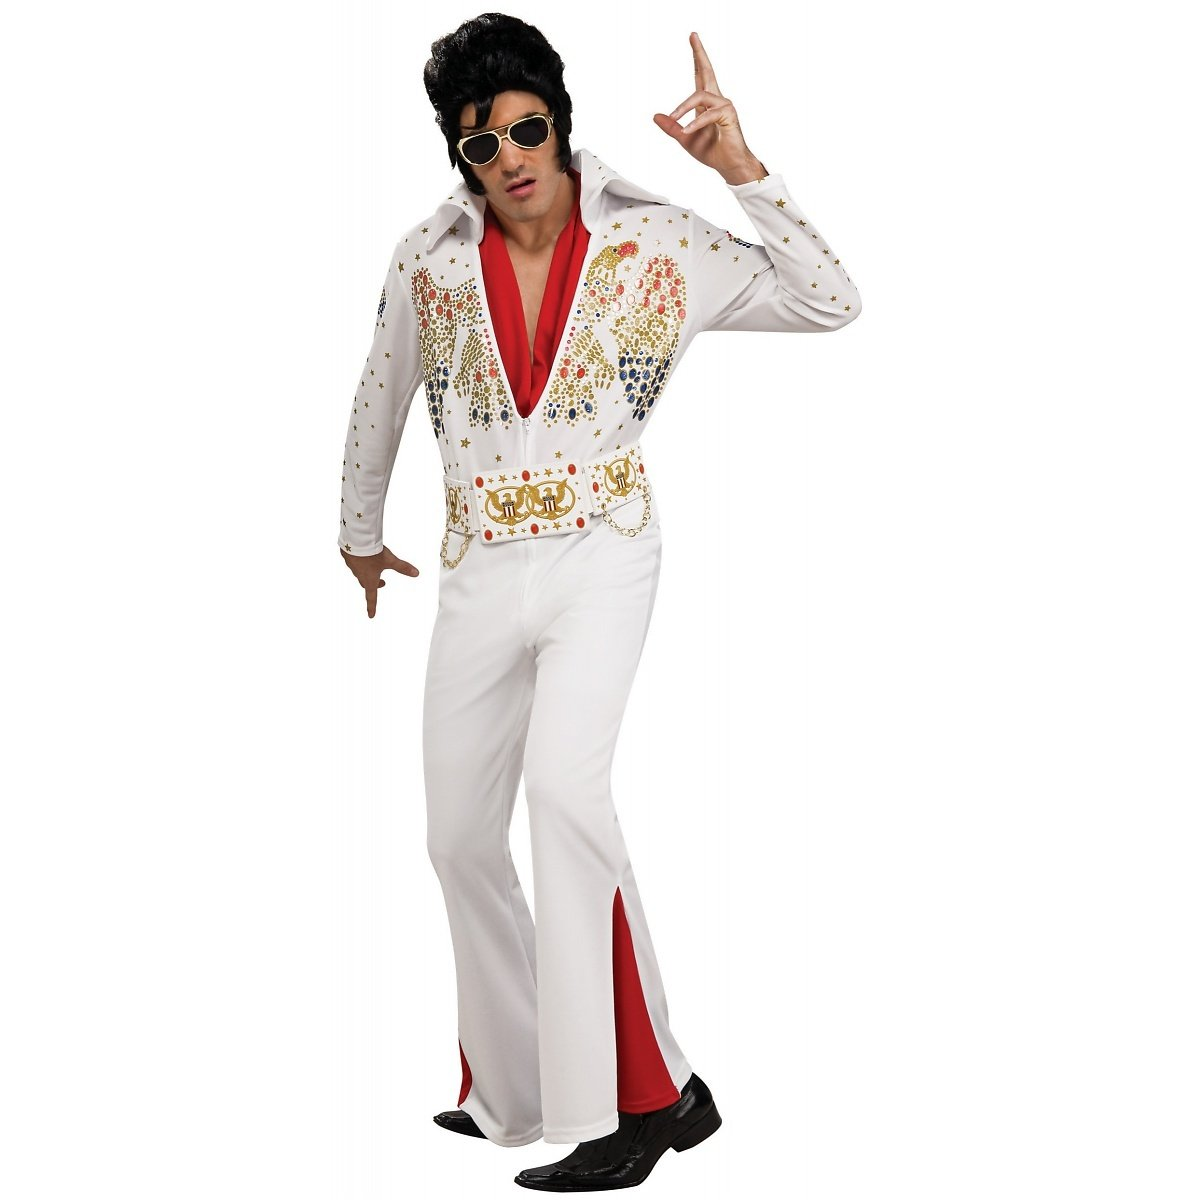 Adult Deluxe Elvis Presley Halloween Costume (XL) by Rubie's Costume Co